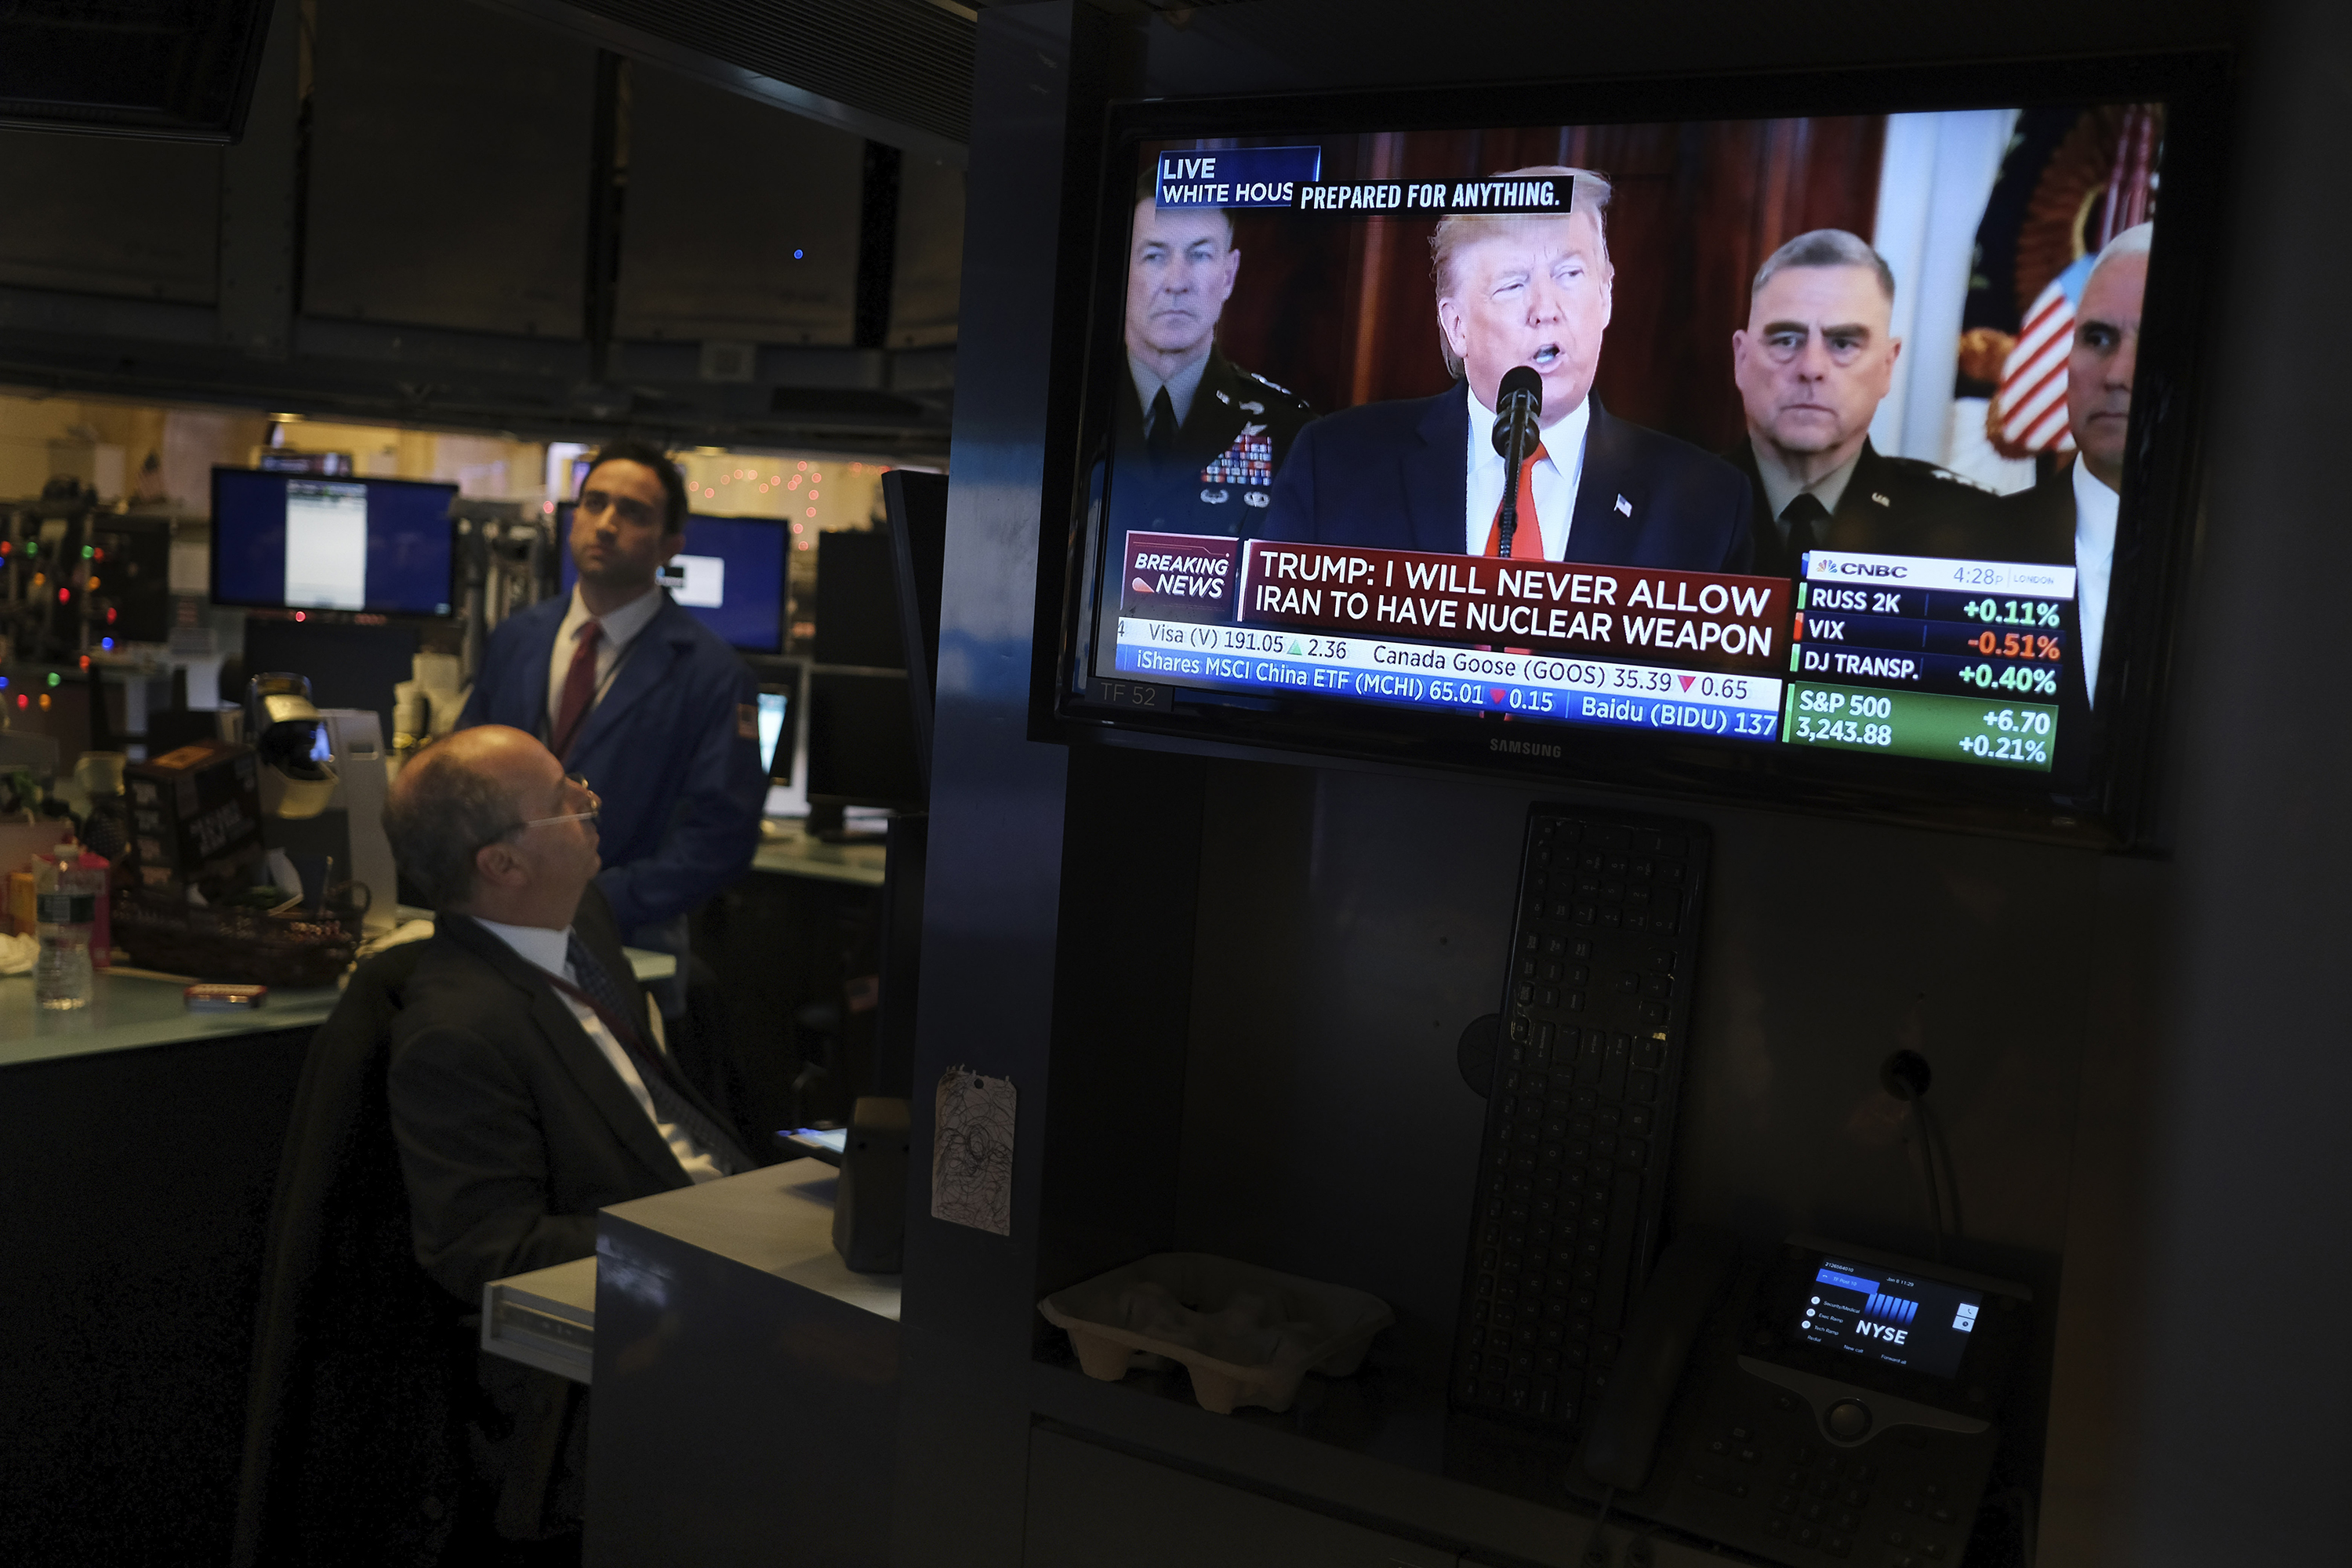 Traders pause to watch a televised speech by President Donald Trump as they work the floor of the New York Stock Exchange on Wednesday, January 8.